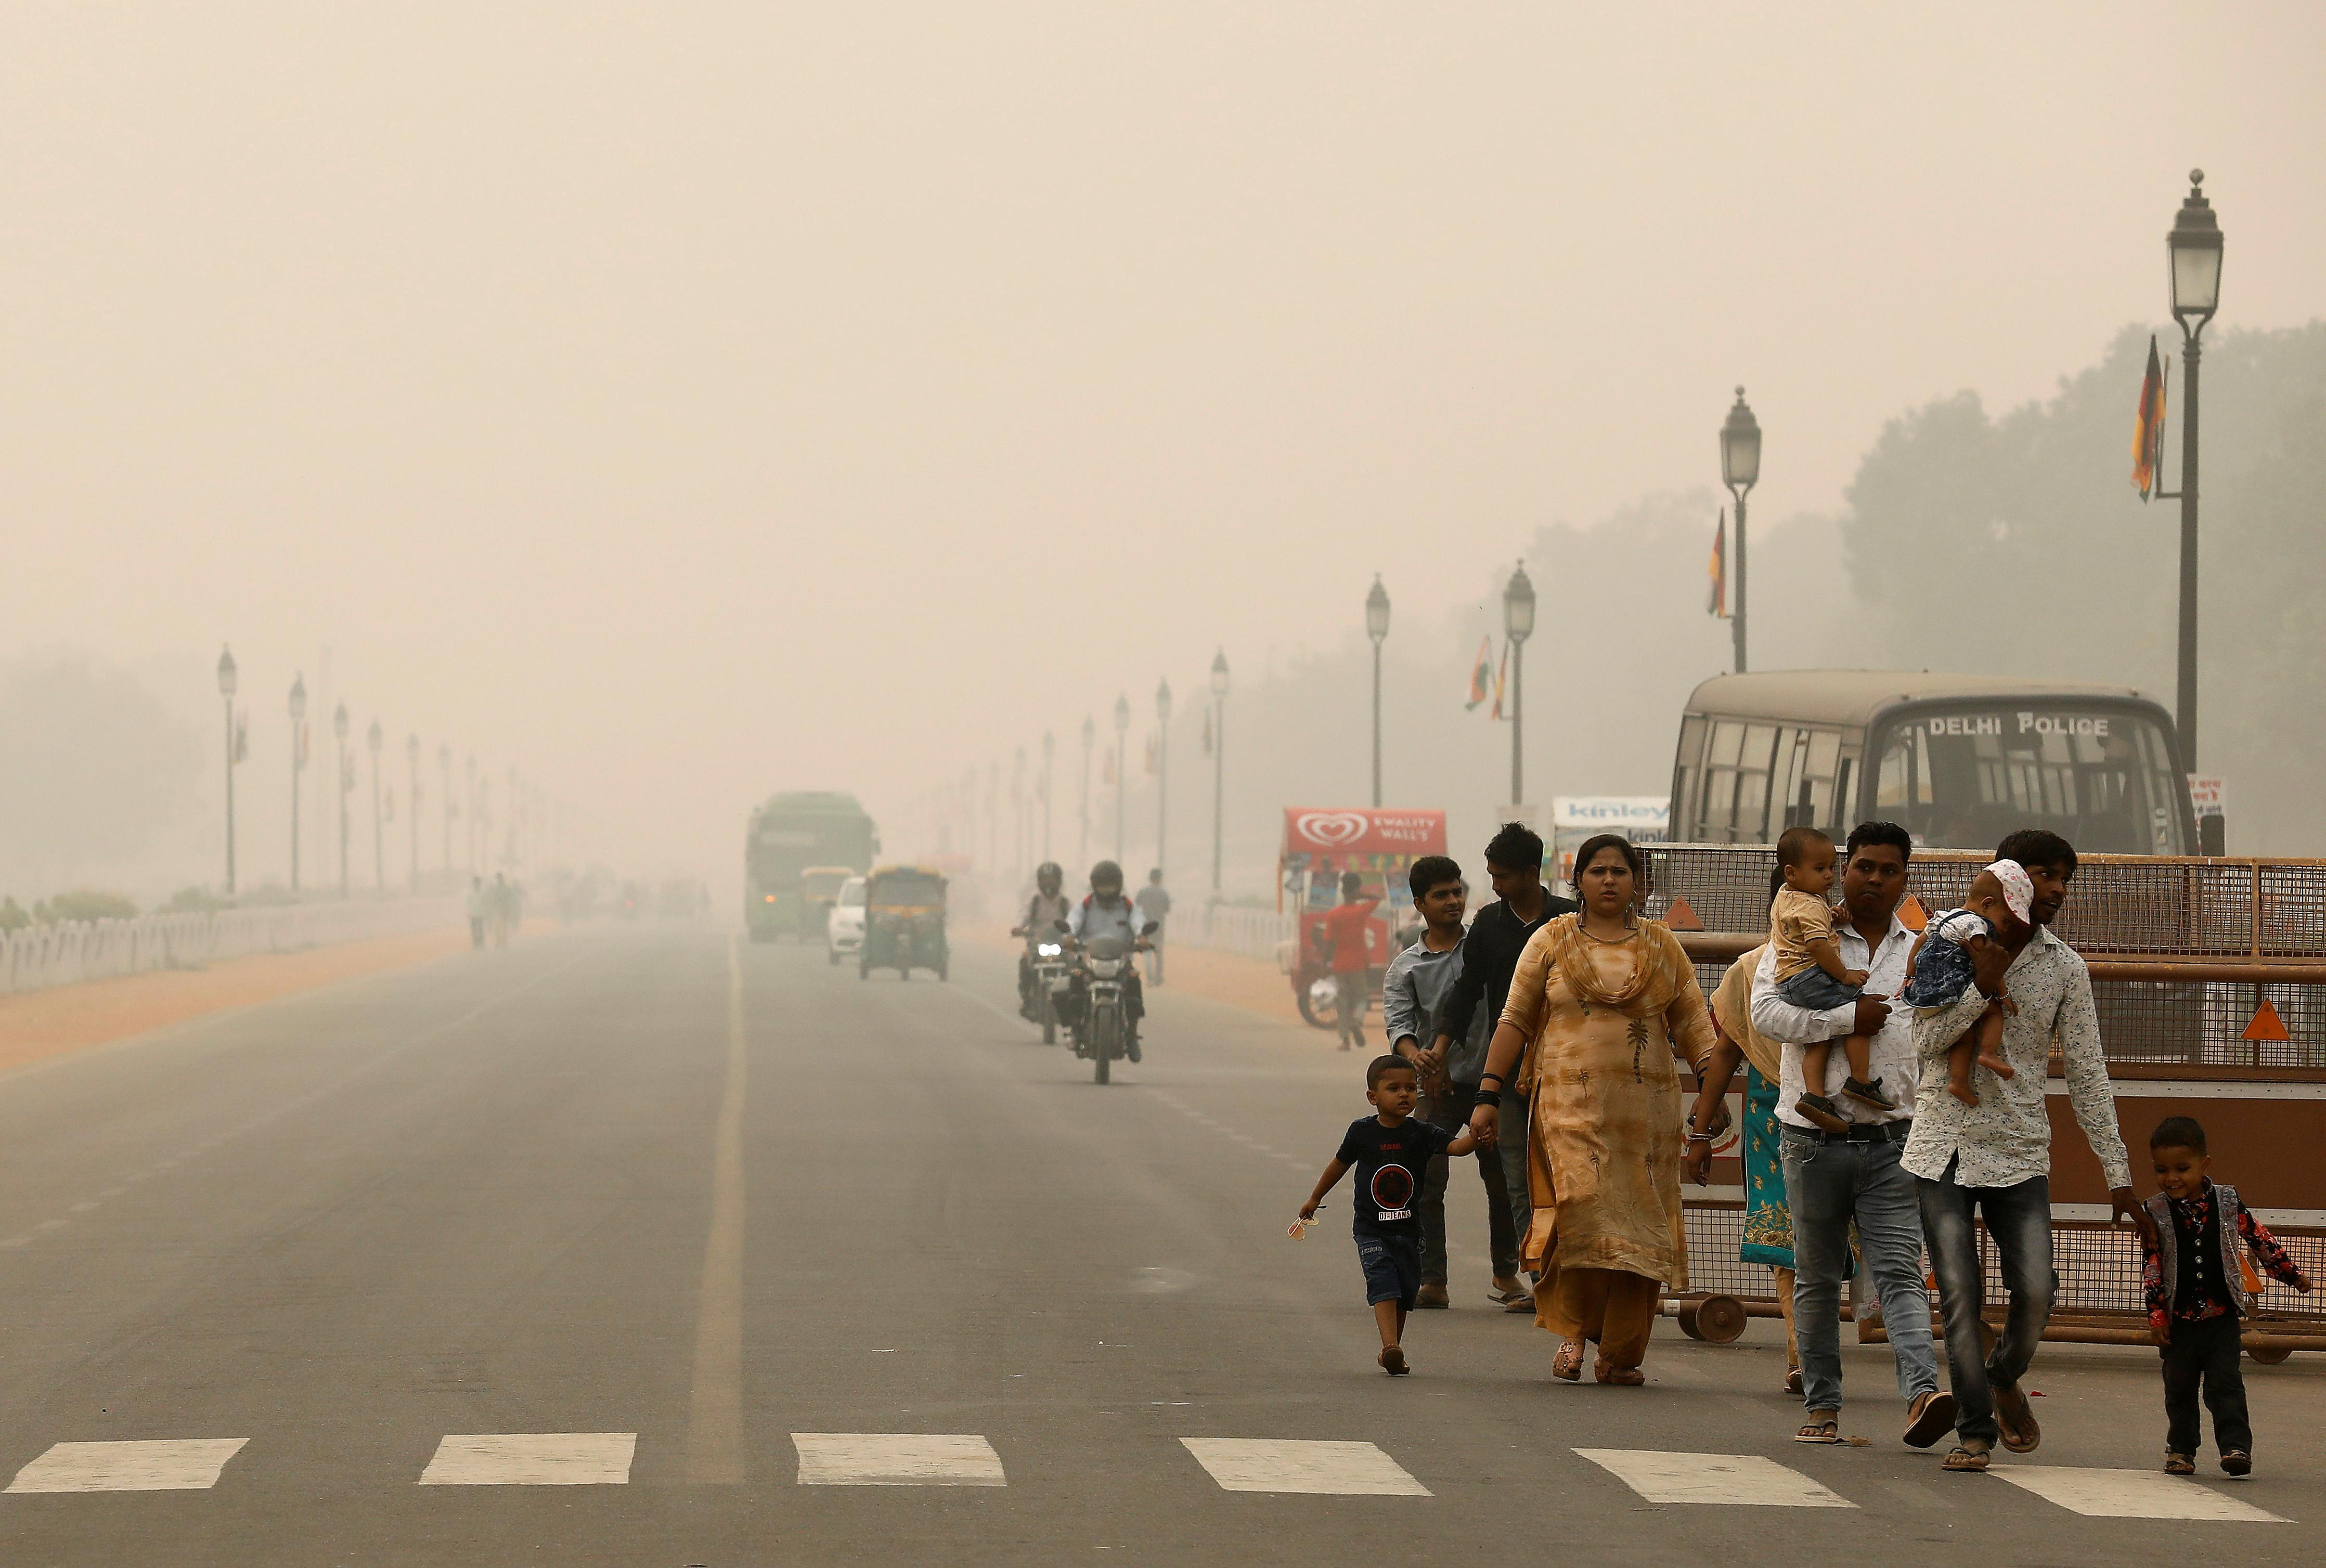 New Delhi declares public emergency as pollution at year's worst ...